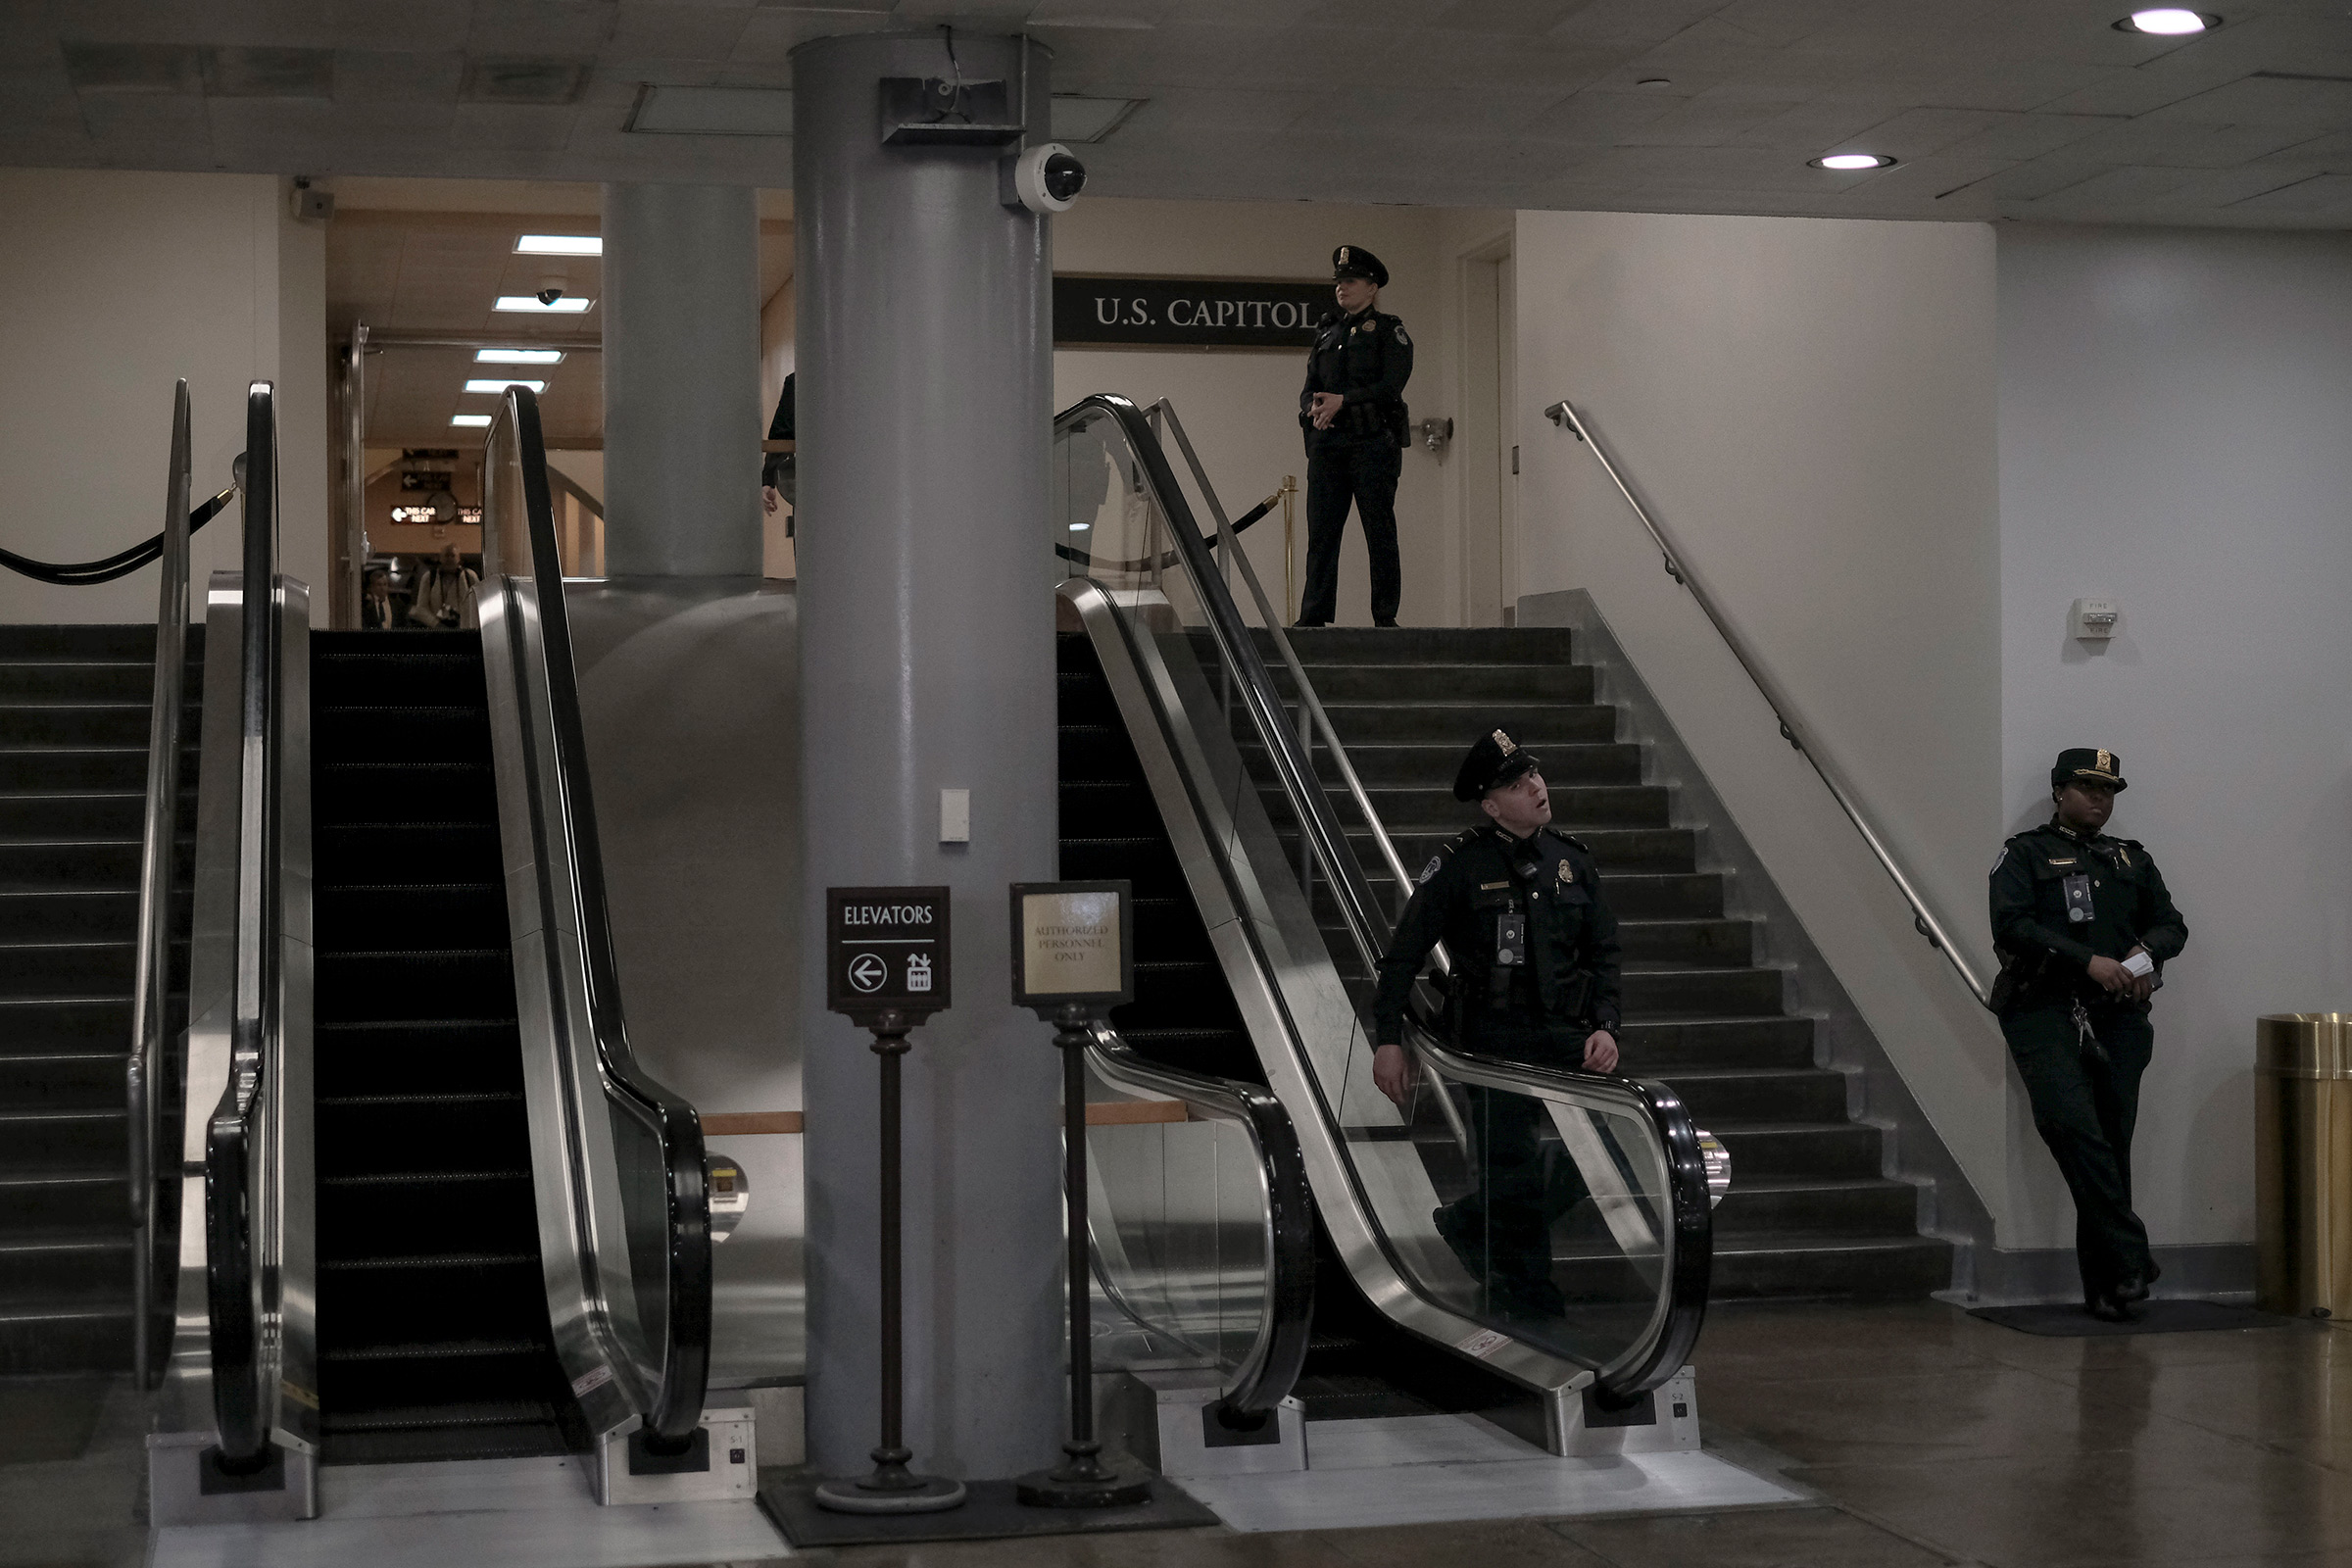 Capitol Hill police stand guard at the senate subway during the senate impeachment trial at the Capitol in Washington, D.C, on Jan. 29, 2020.